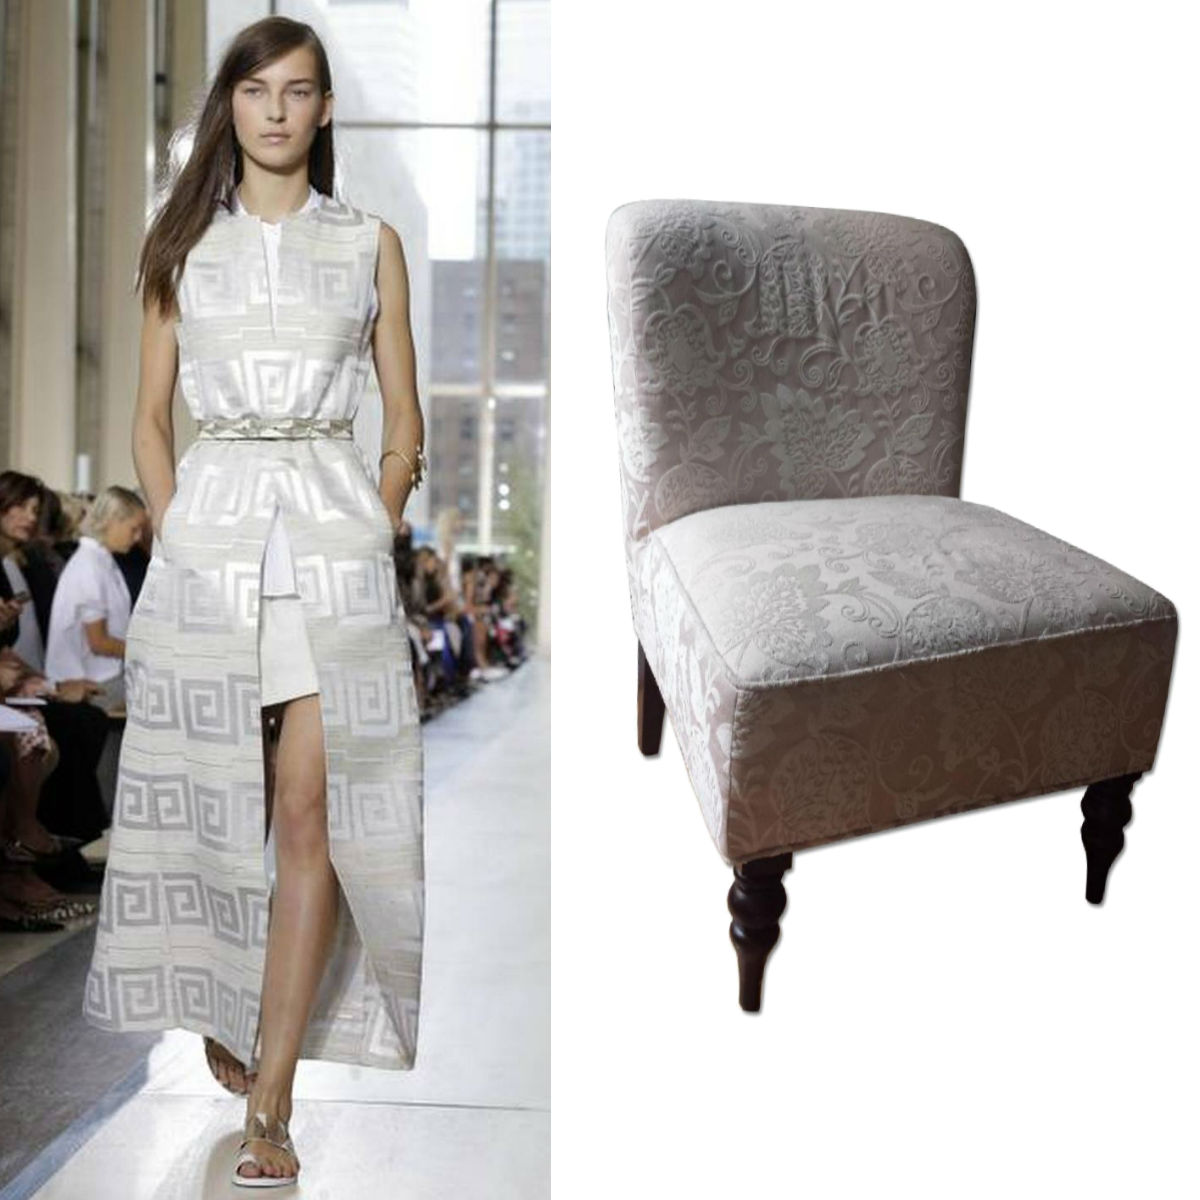 NYC Fashion Week Inspiration for Your Home